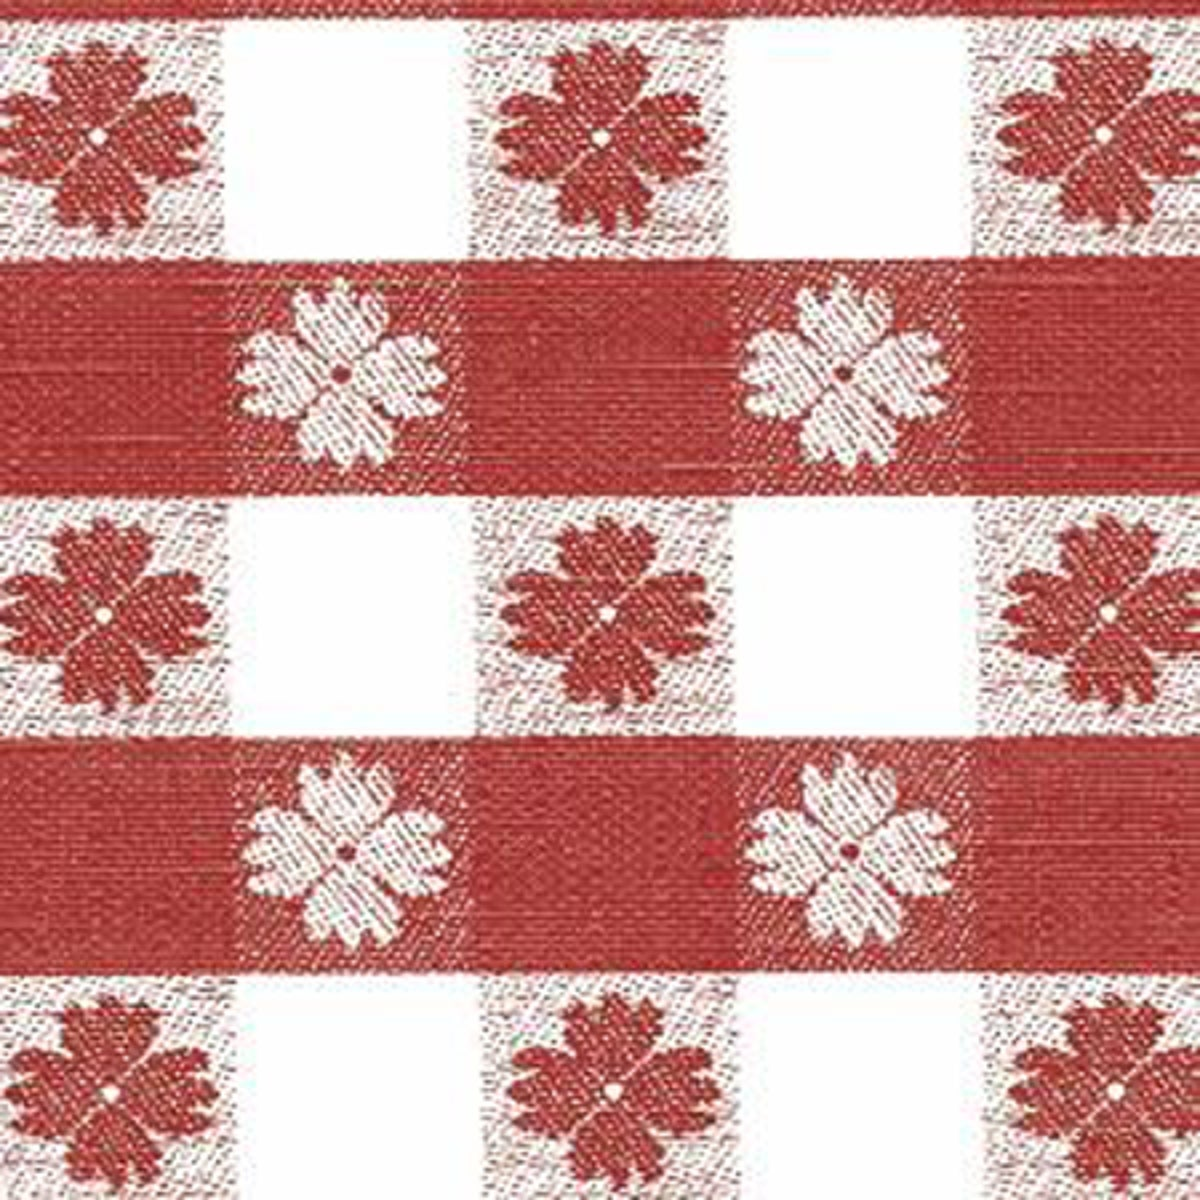 RED CHECK FLN BACK VINYL - 0243 by Nordic Shield/epv